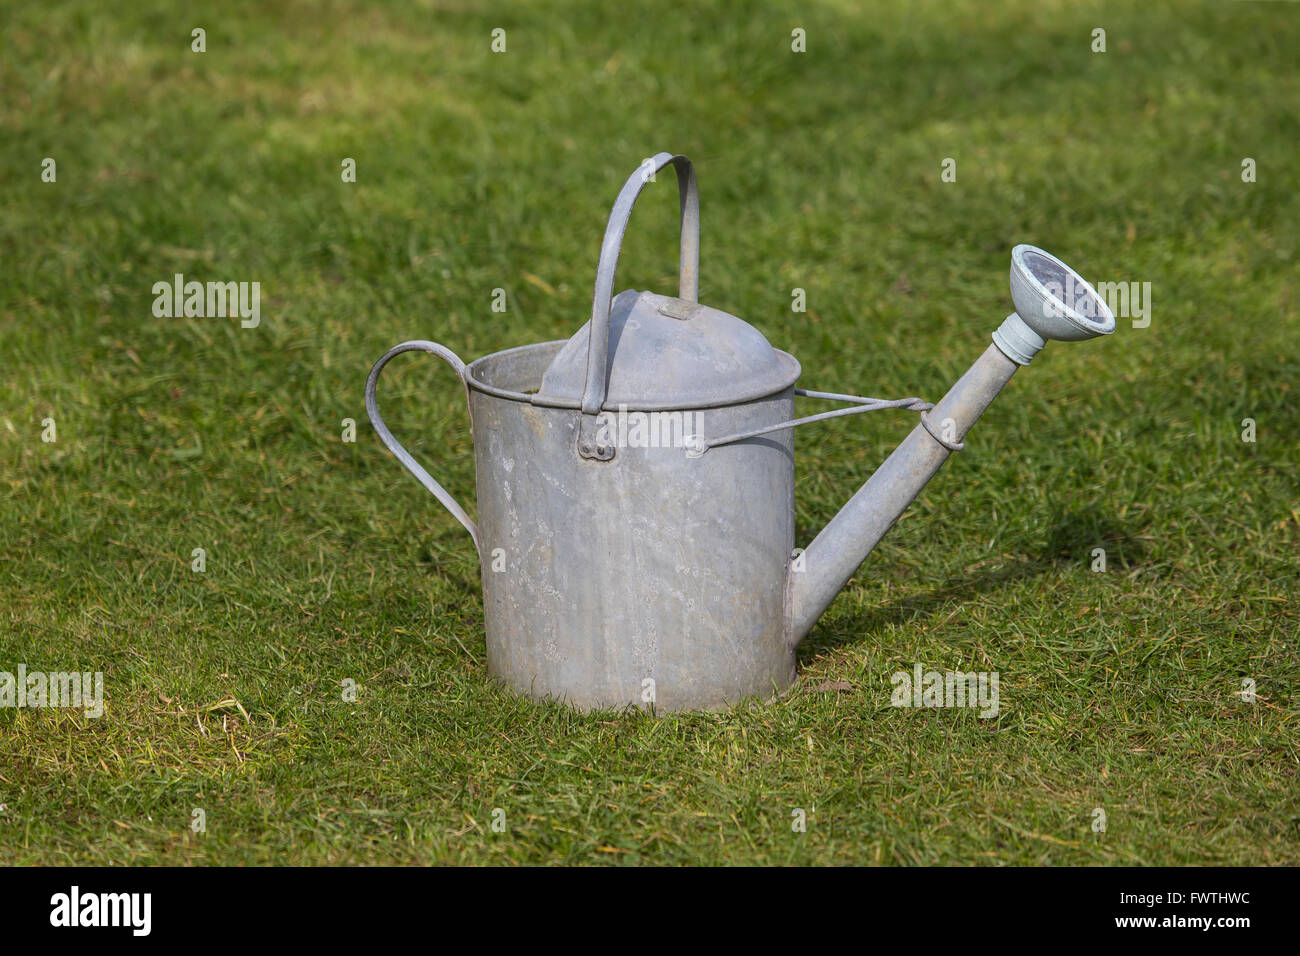 Old traditional galvanised galvanized watering can with metal rose and rubber surround on a garden lawn - Stock Image